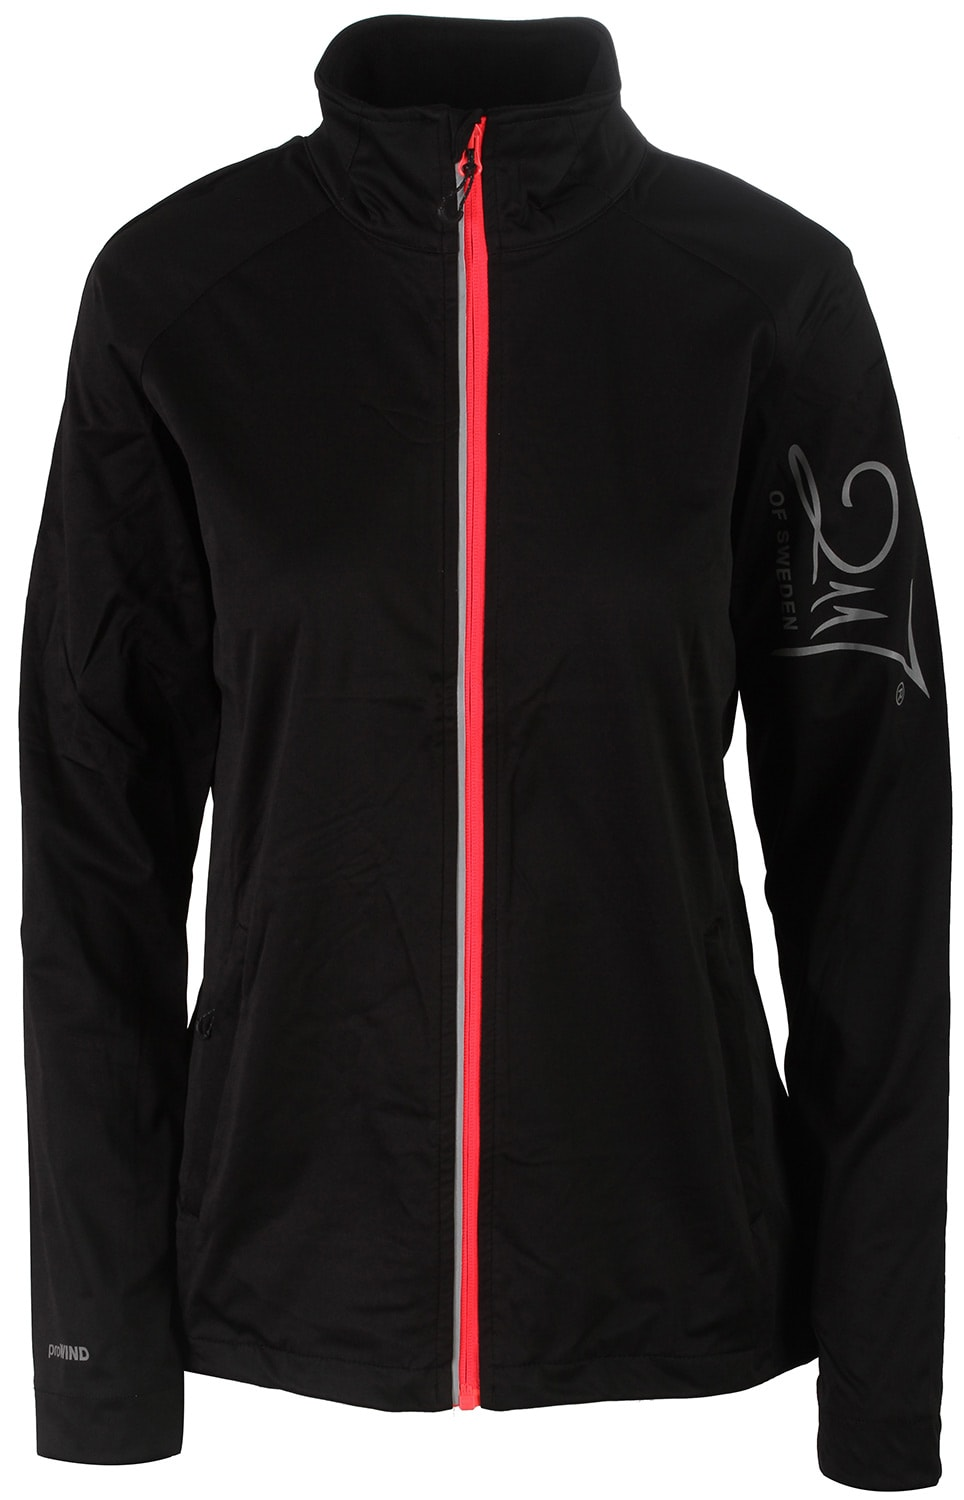 Image of 2117 of Sweden Kalix XC Ski Jacket